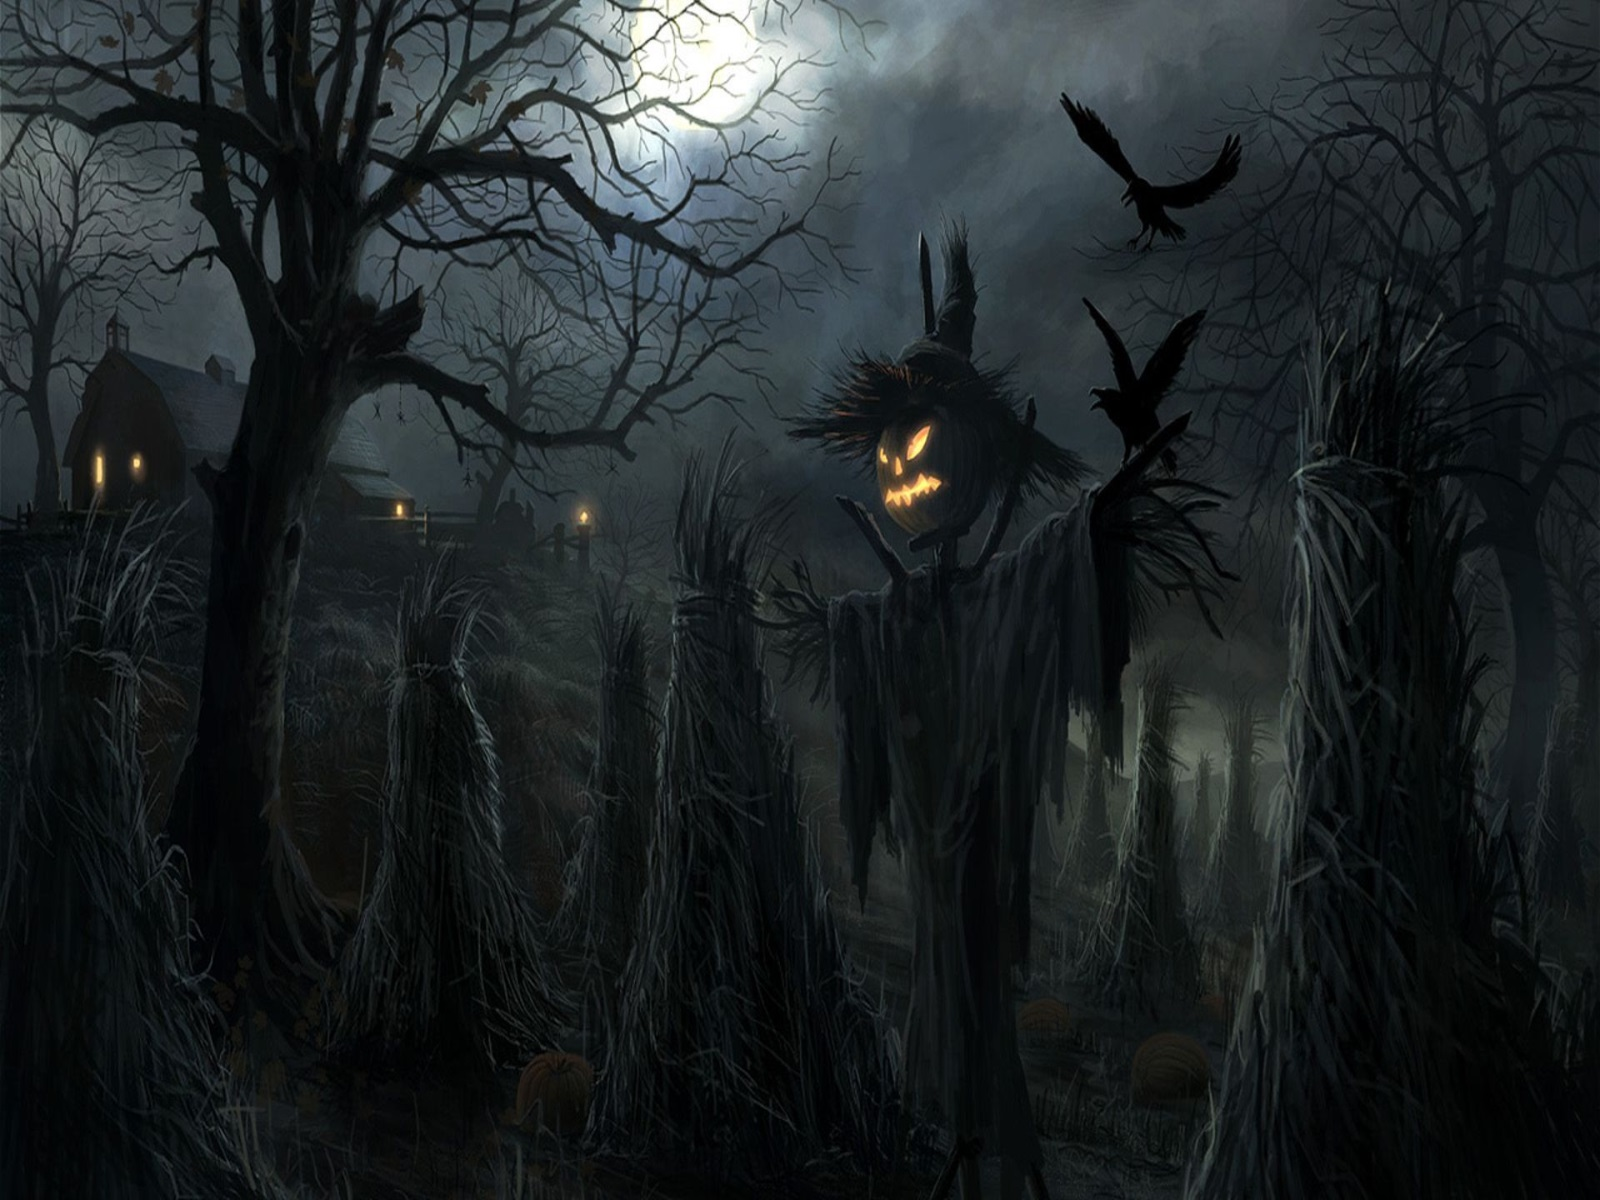 Hd Wallpapers Images: High Definition Halloween Images Wallpapers Backgrounds